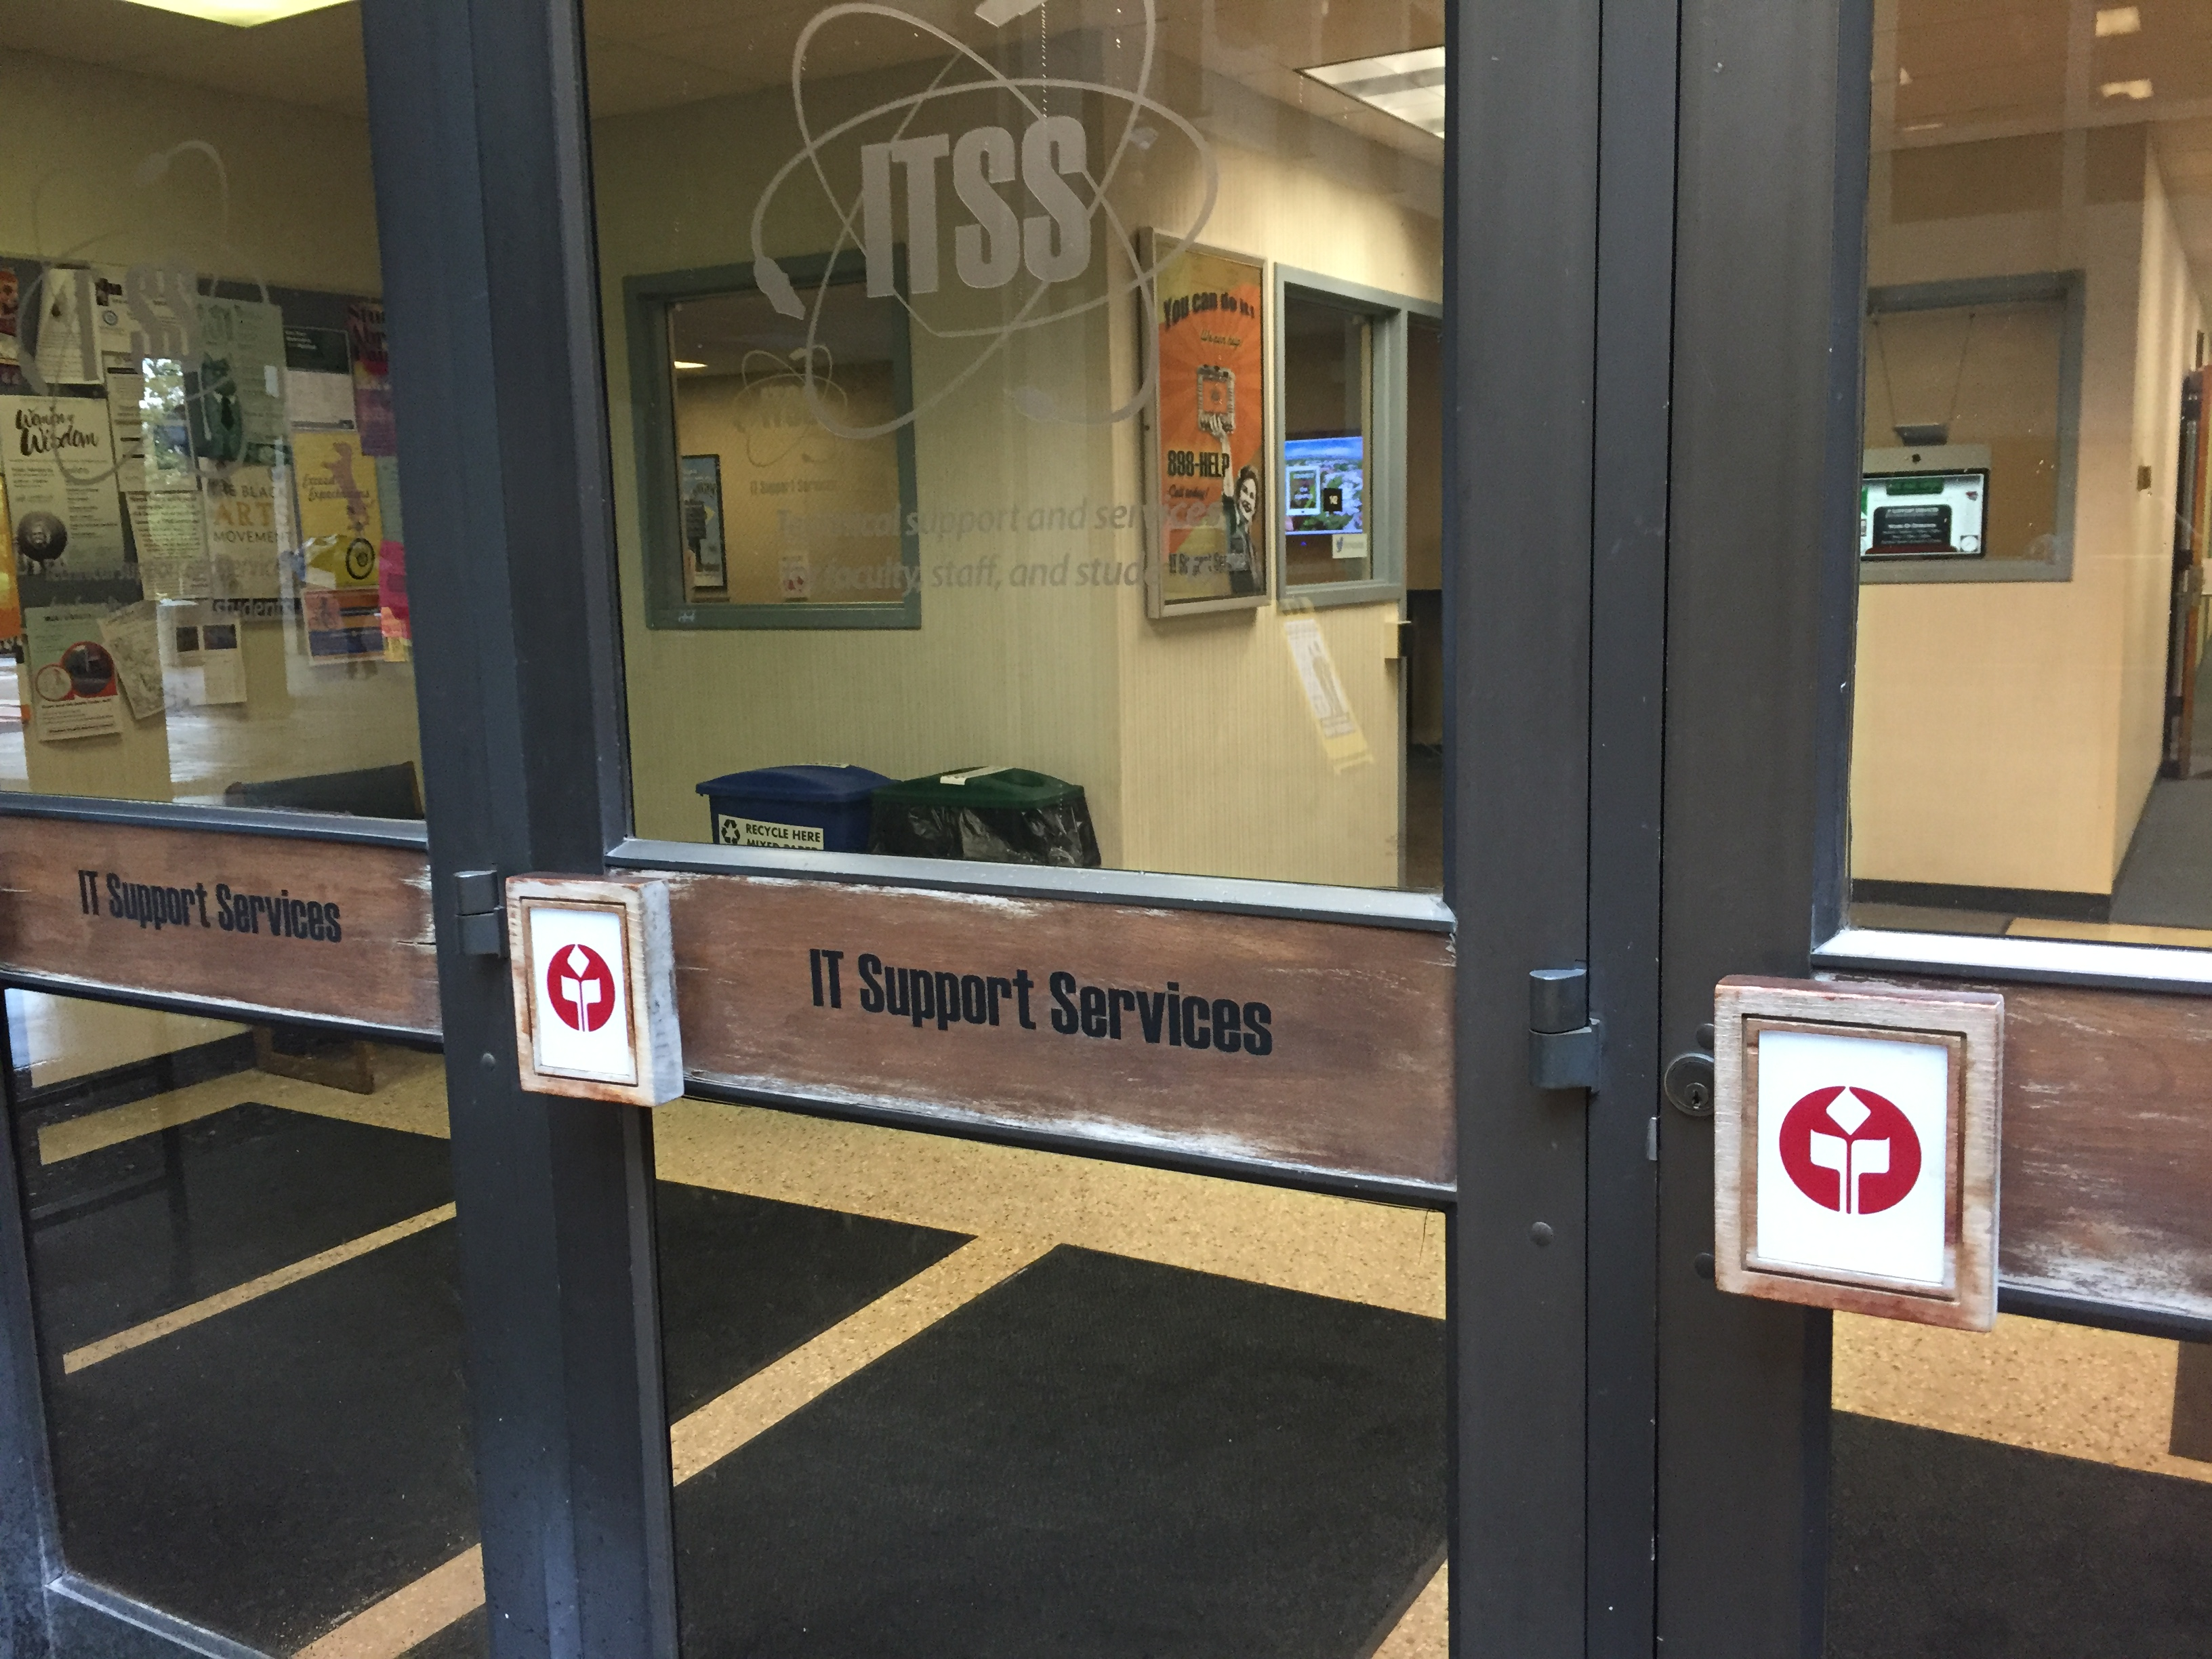 ITSS is located on the first floor of the Meriam Library. Photo credit: Carly Campbell